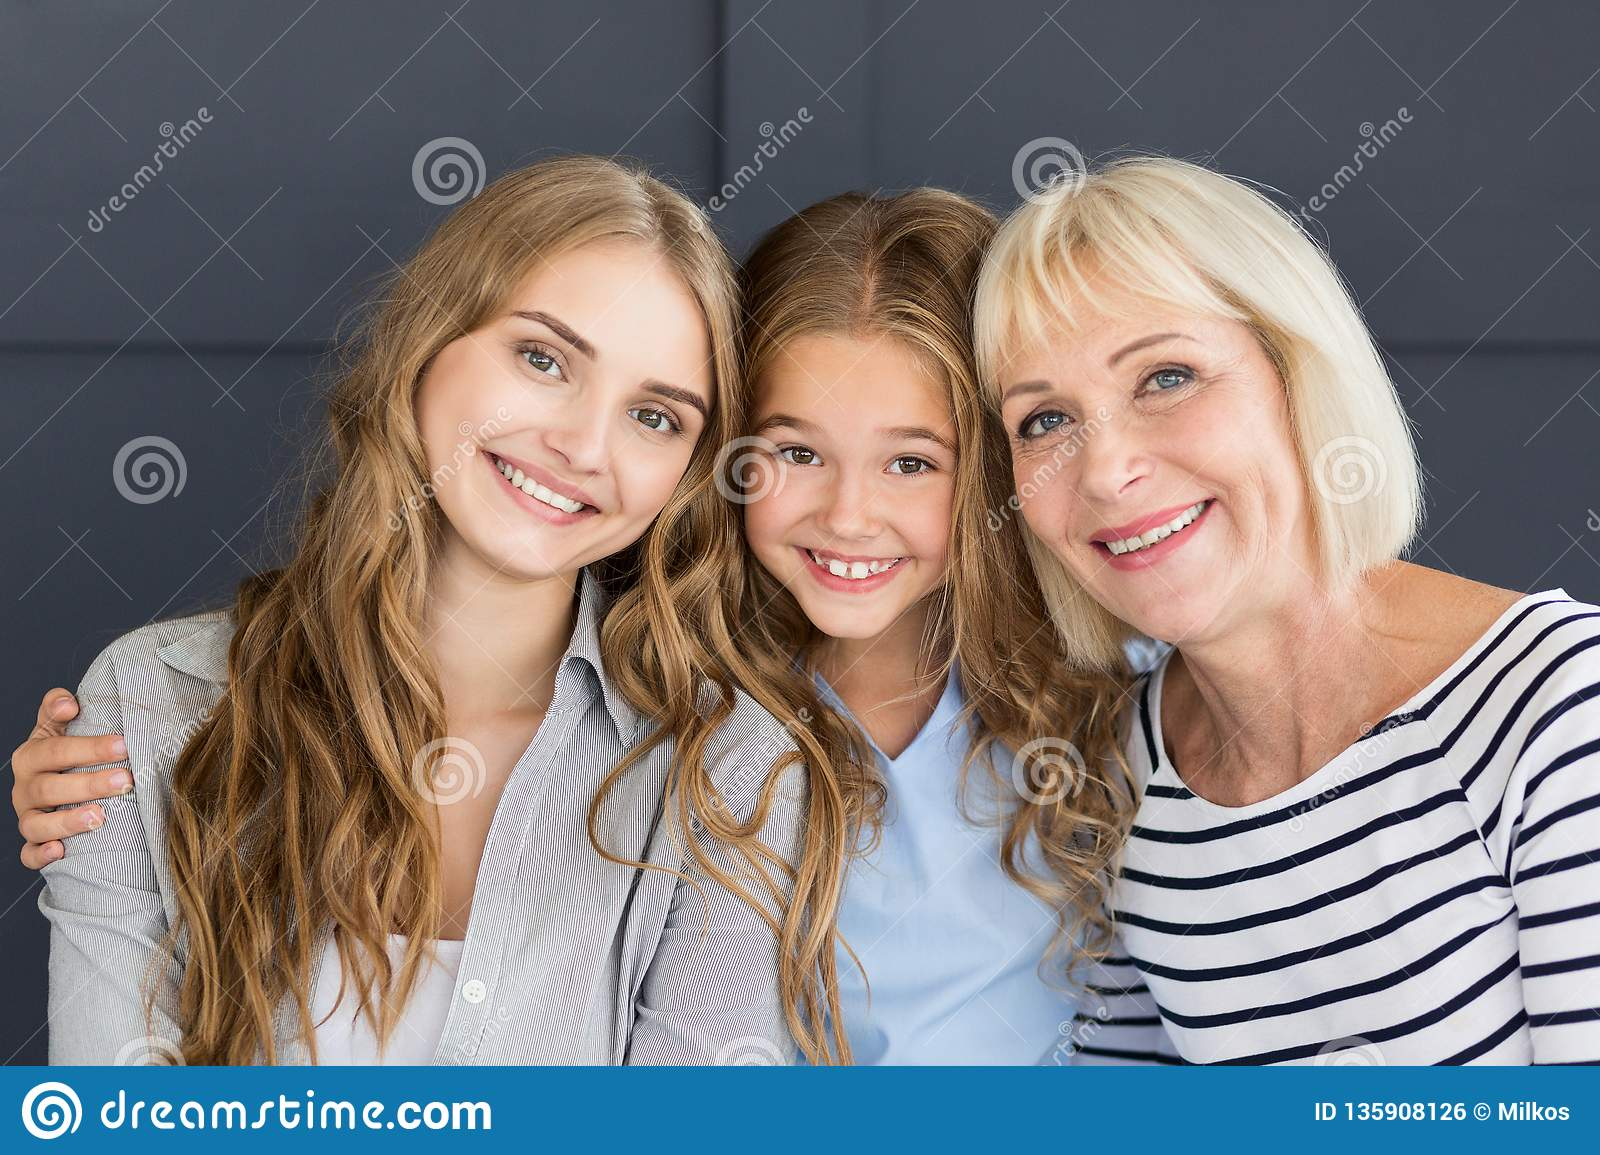 Beautiful Granny Stock Images - Download 5,328 Royalty Free Photos-6034